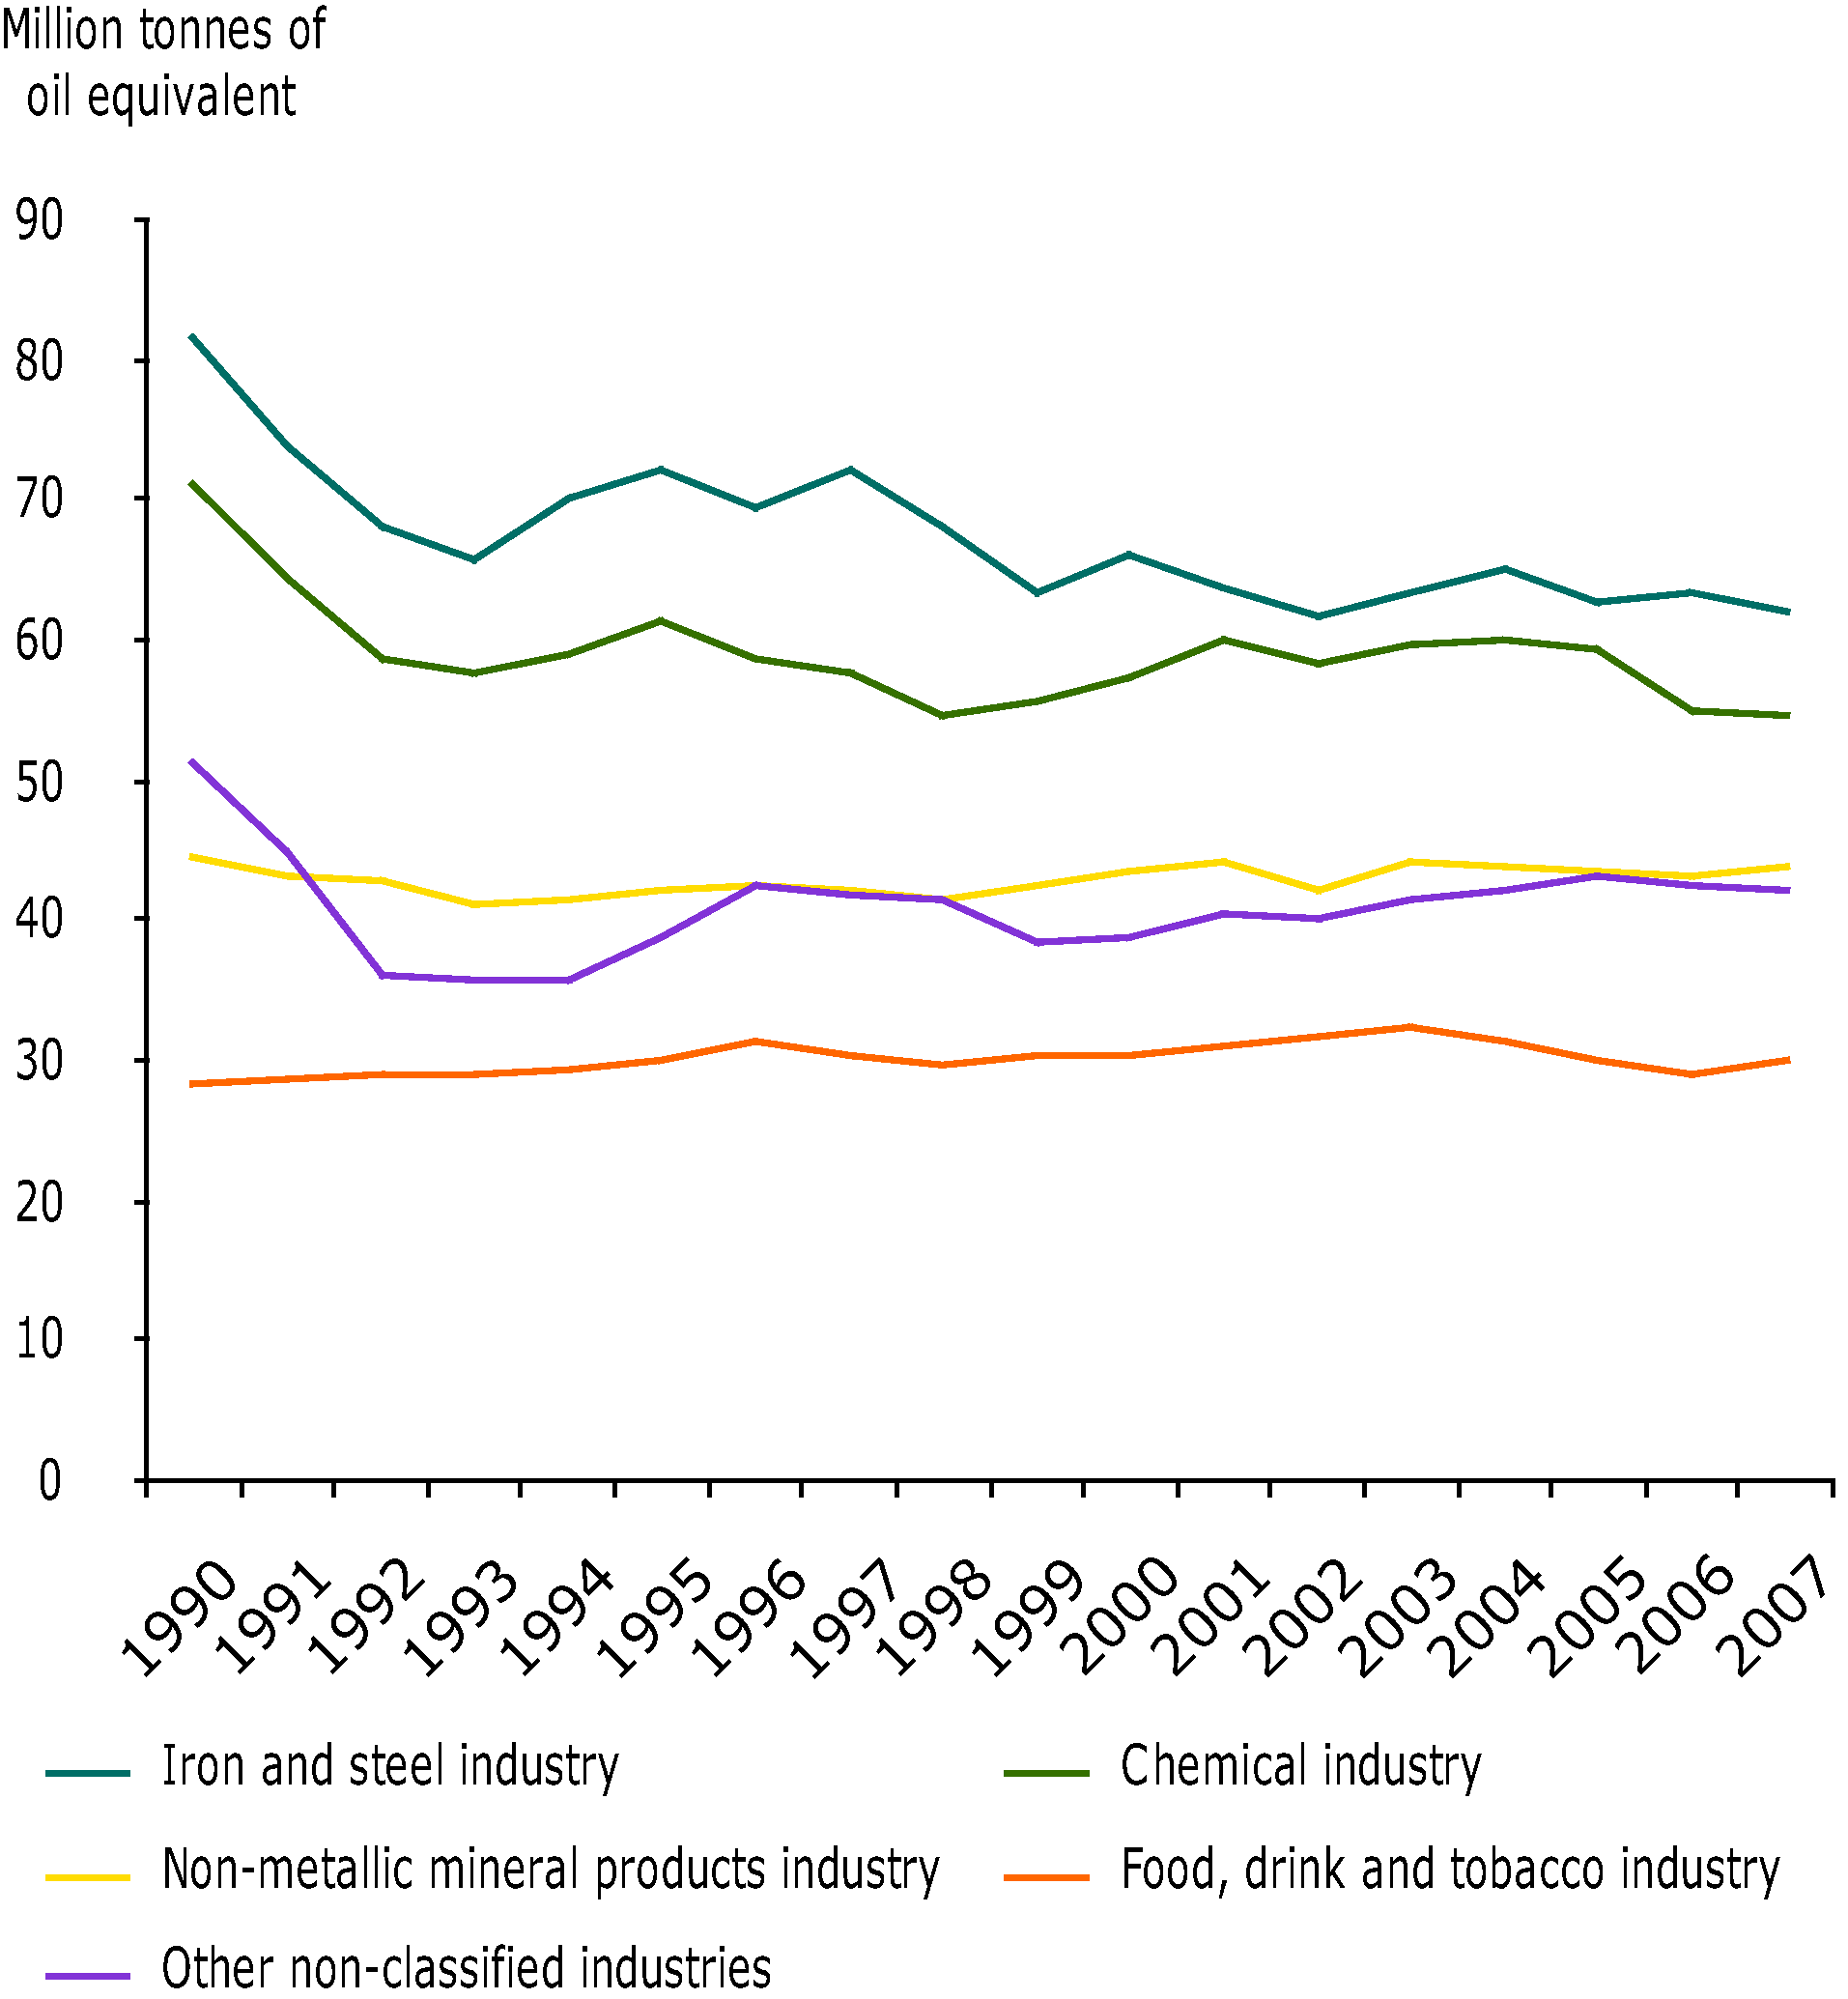 Final energy consumption in the industry sectors